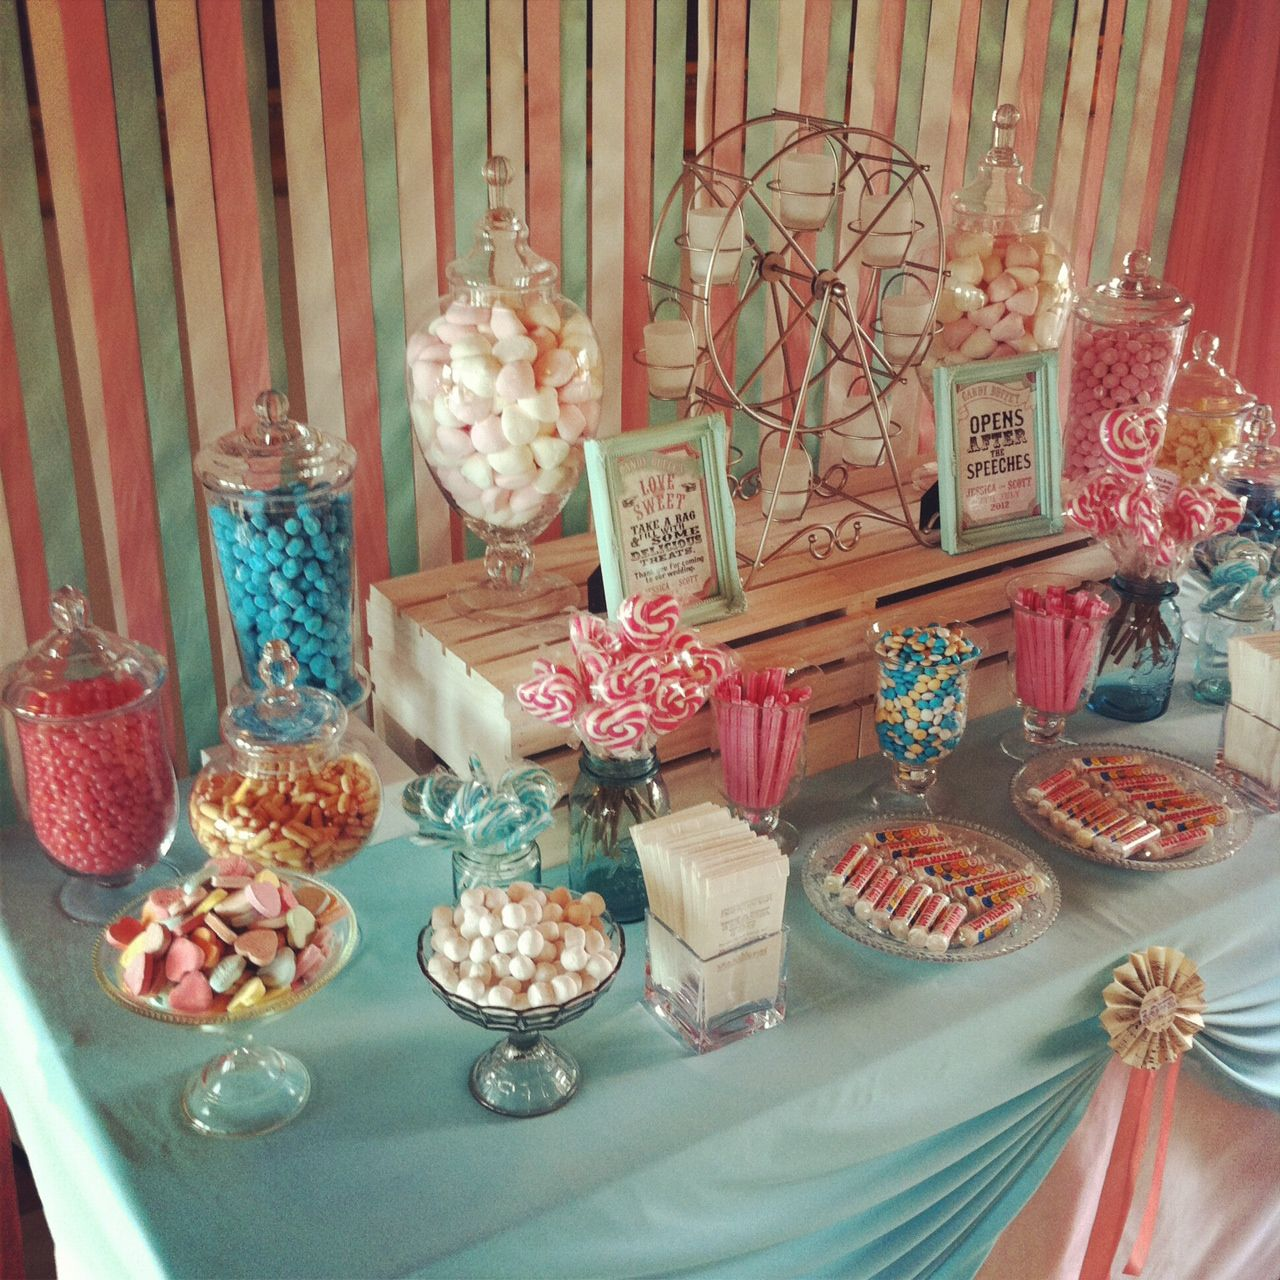 Candy For Baby Shower Ideas: Pretty Blue And Pink Table For A Baby Shower